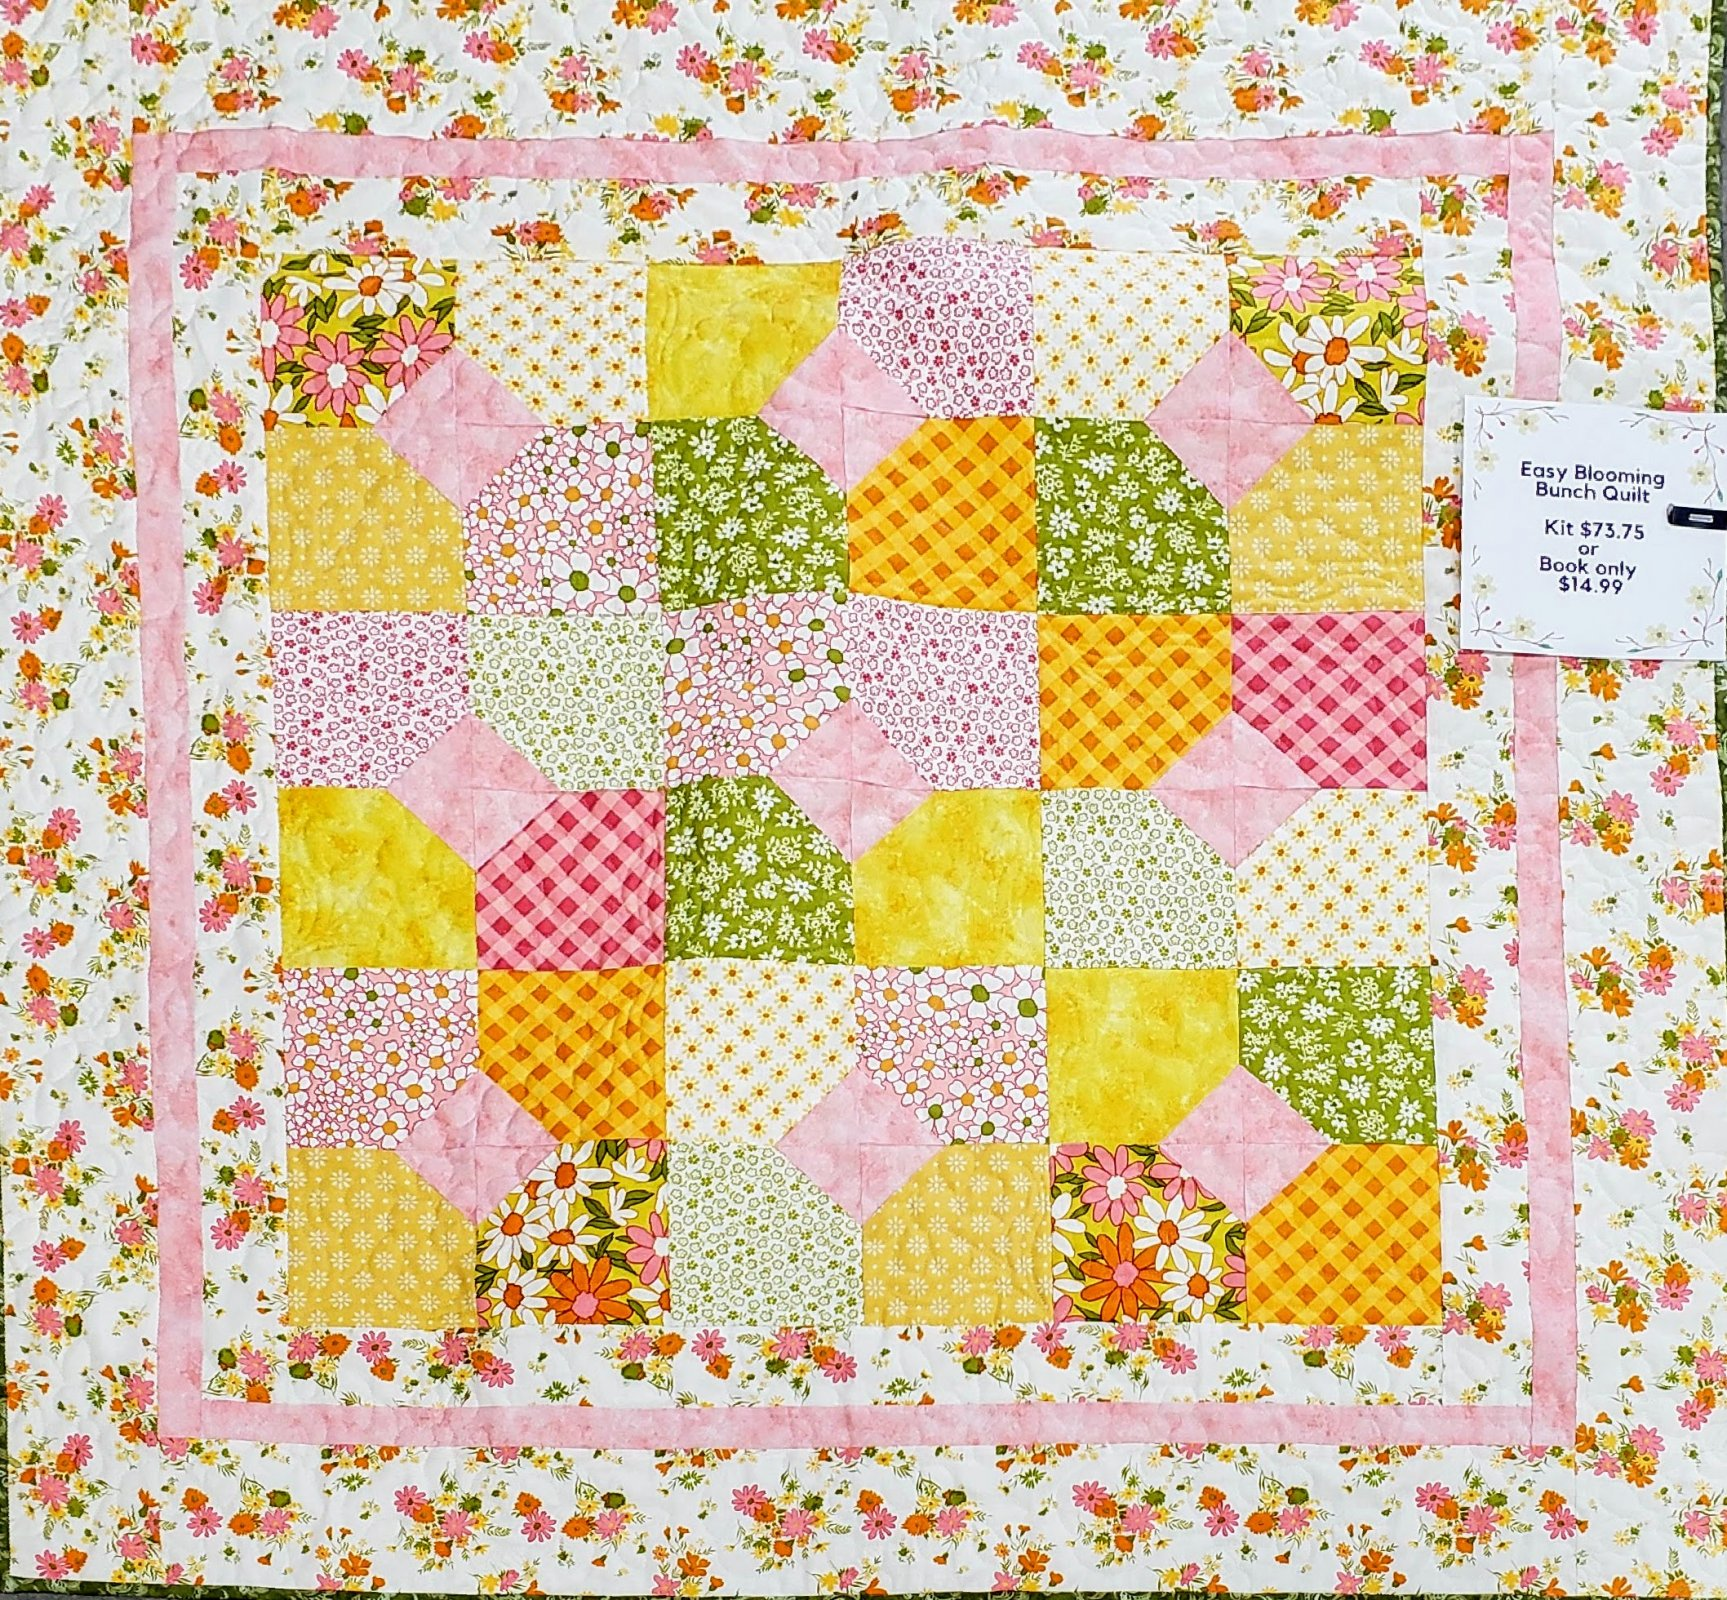 Easy Blooming Bunch Quilt Kit